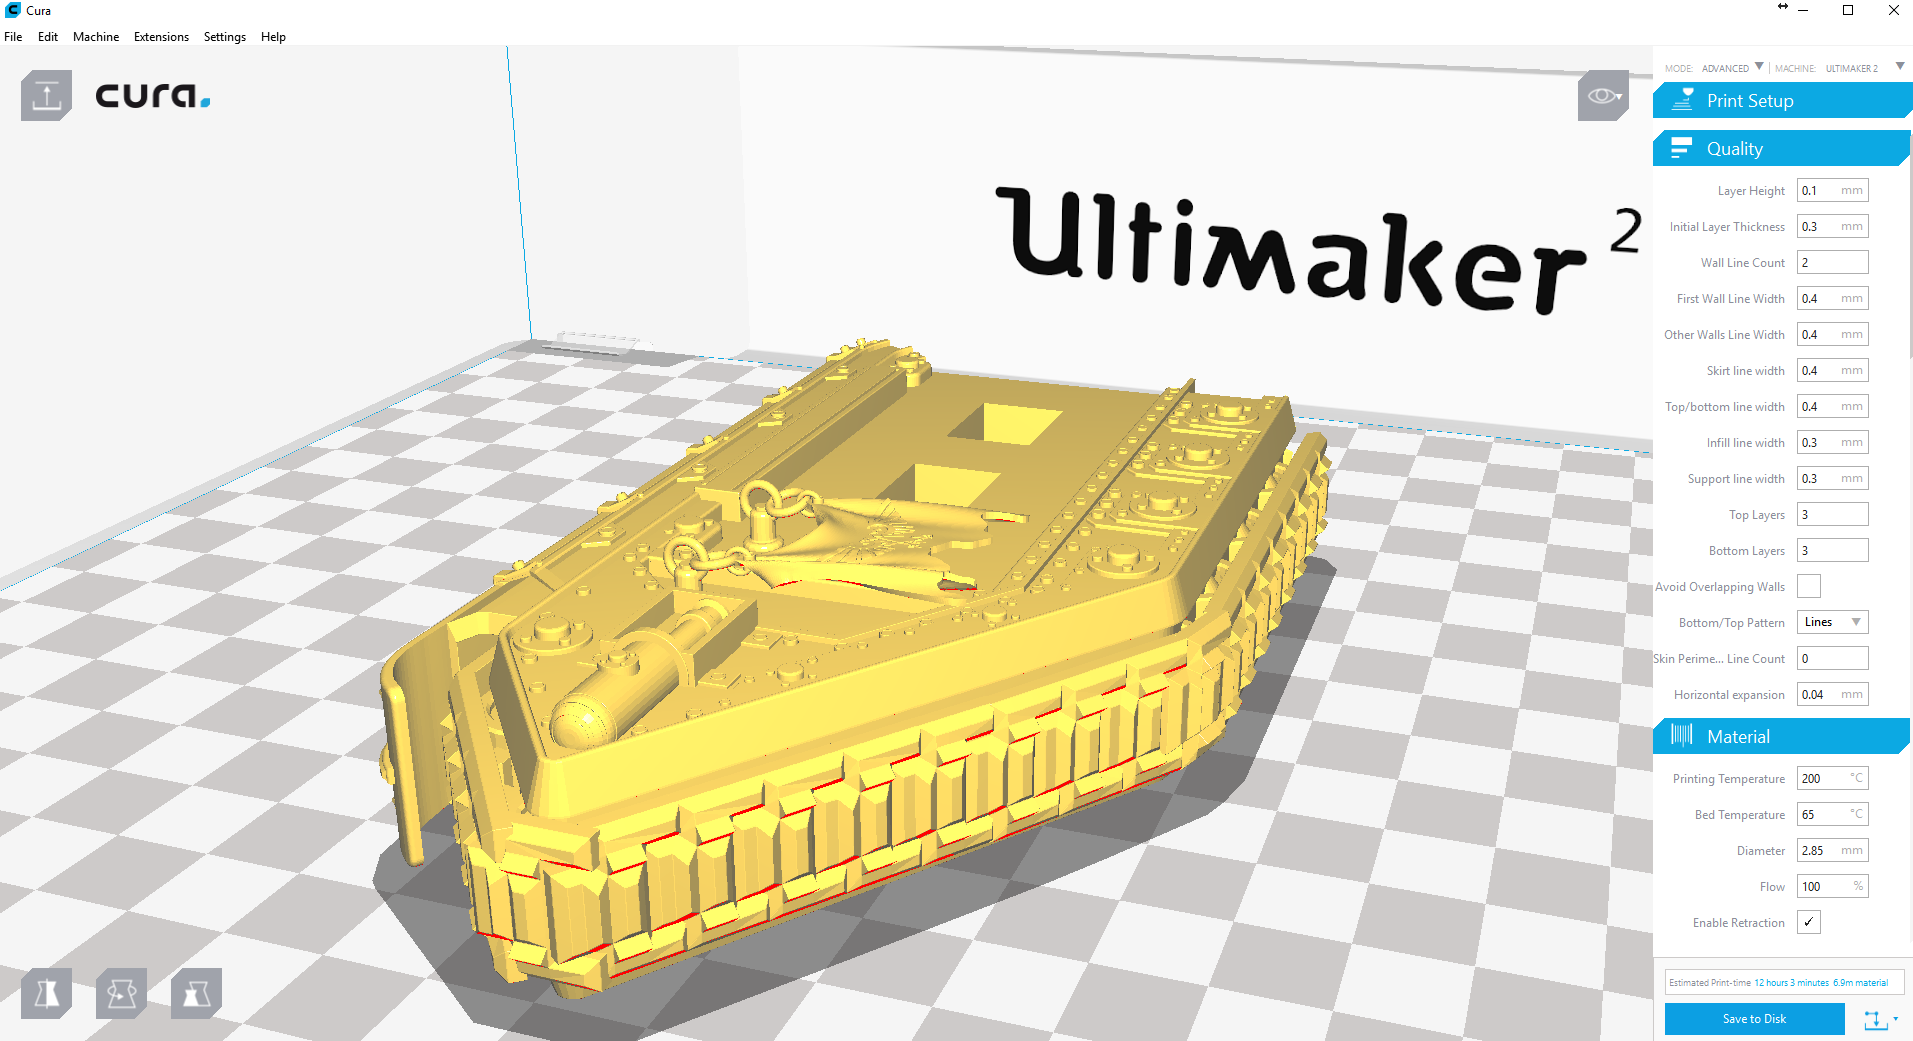 Upload file in Cura software